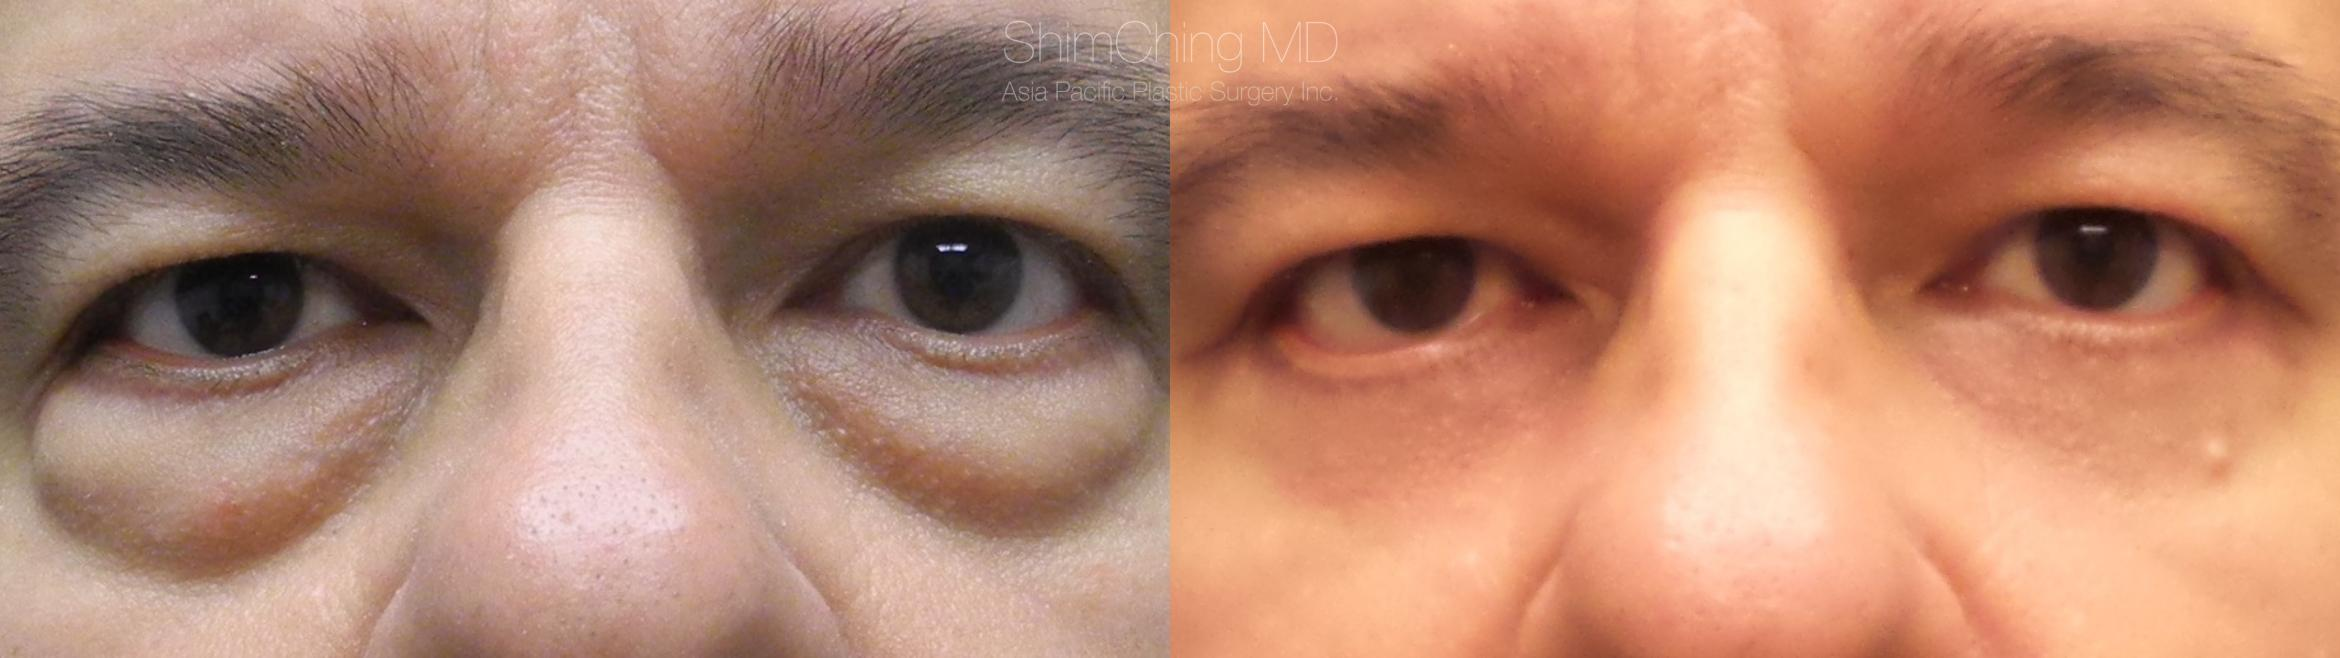 Eyelid Surgery Case 245 Before & After Front | Honolulu, HI | Shim Ching, MD: Asia Pacific Plastic Surgery